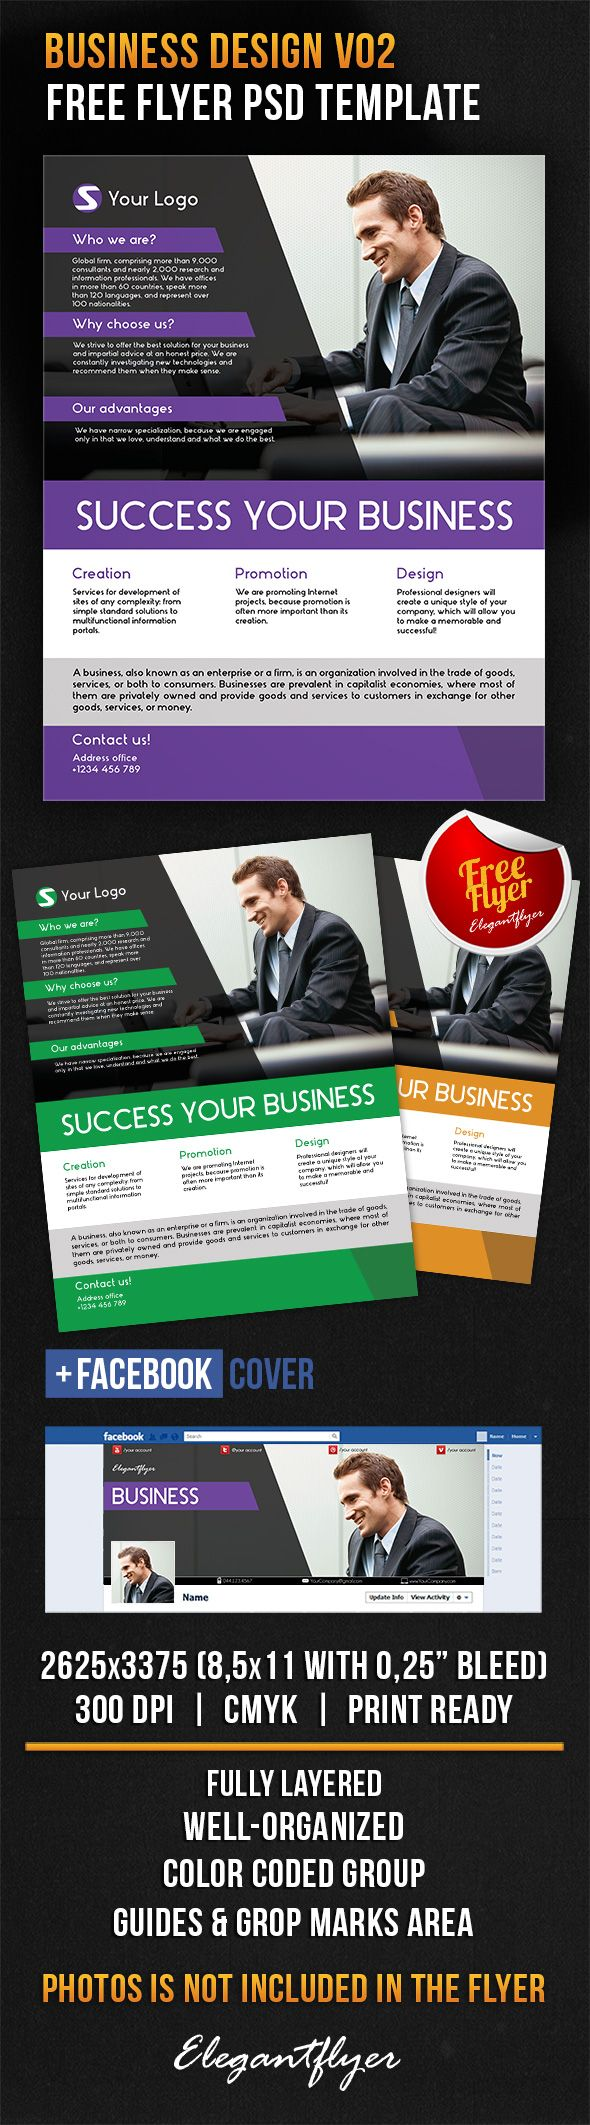 create free flyers online to print